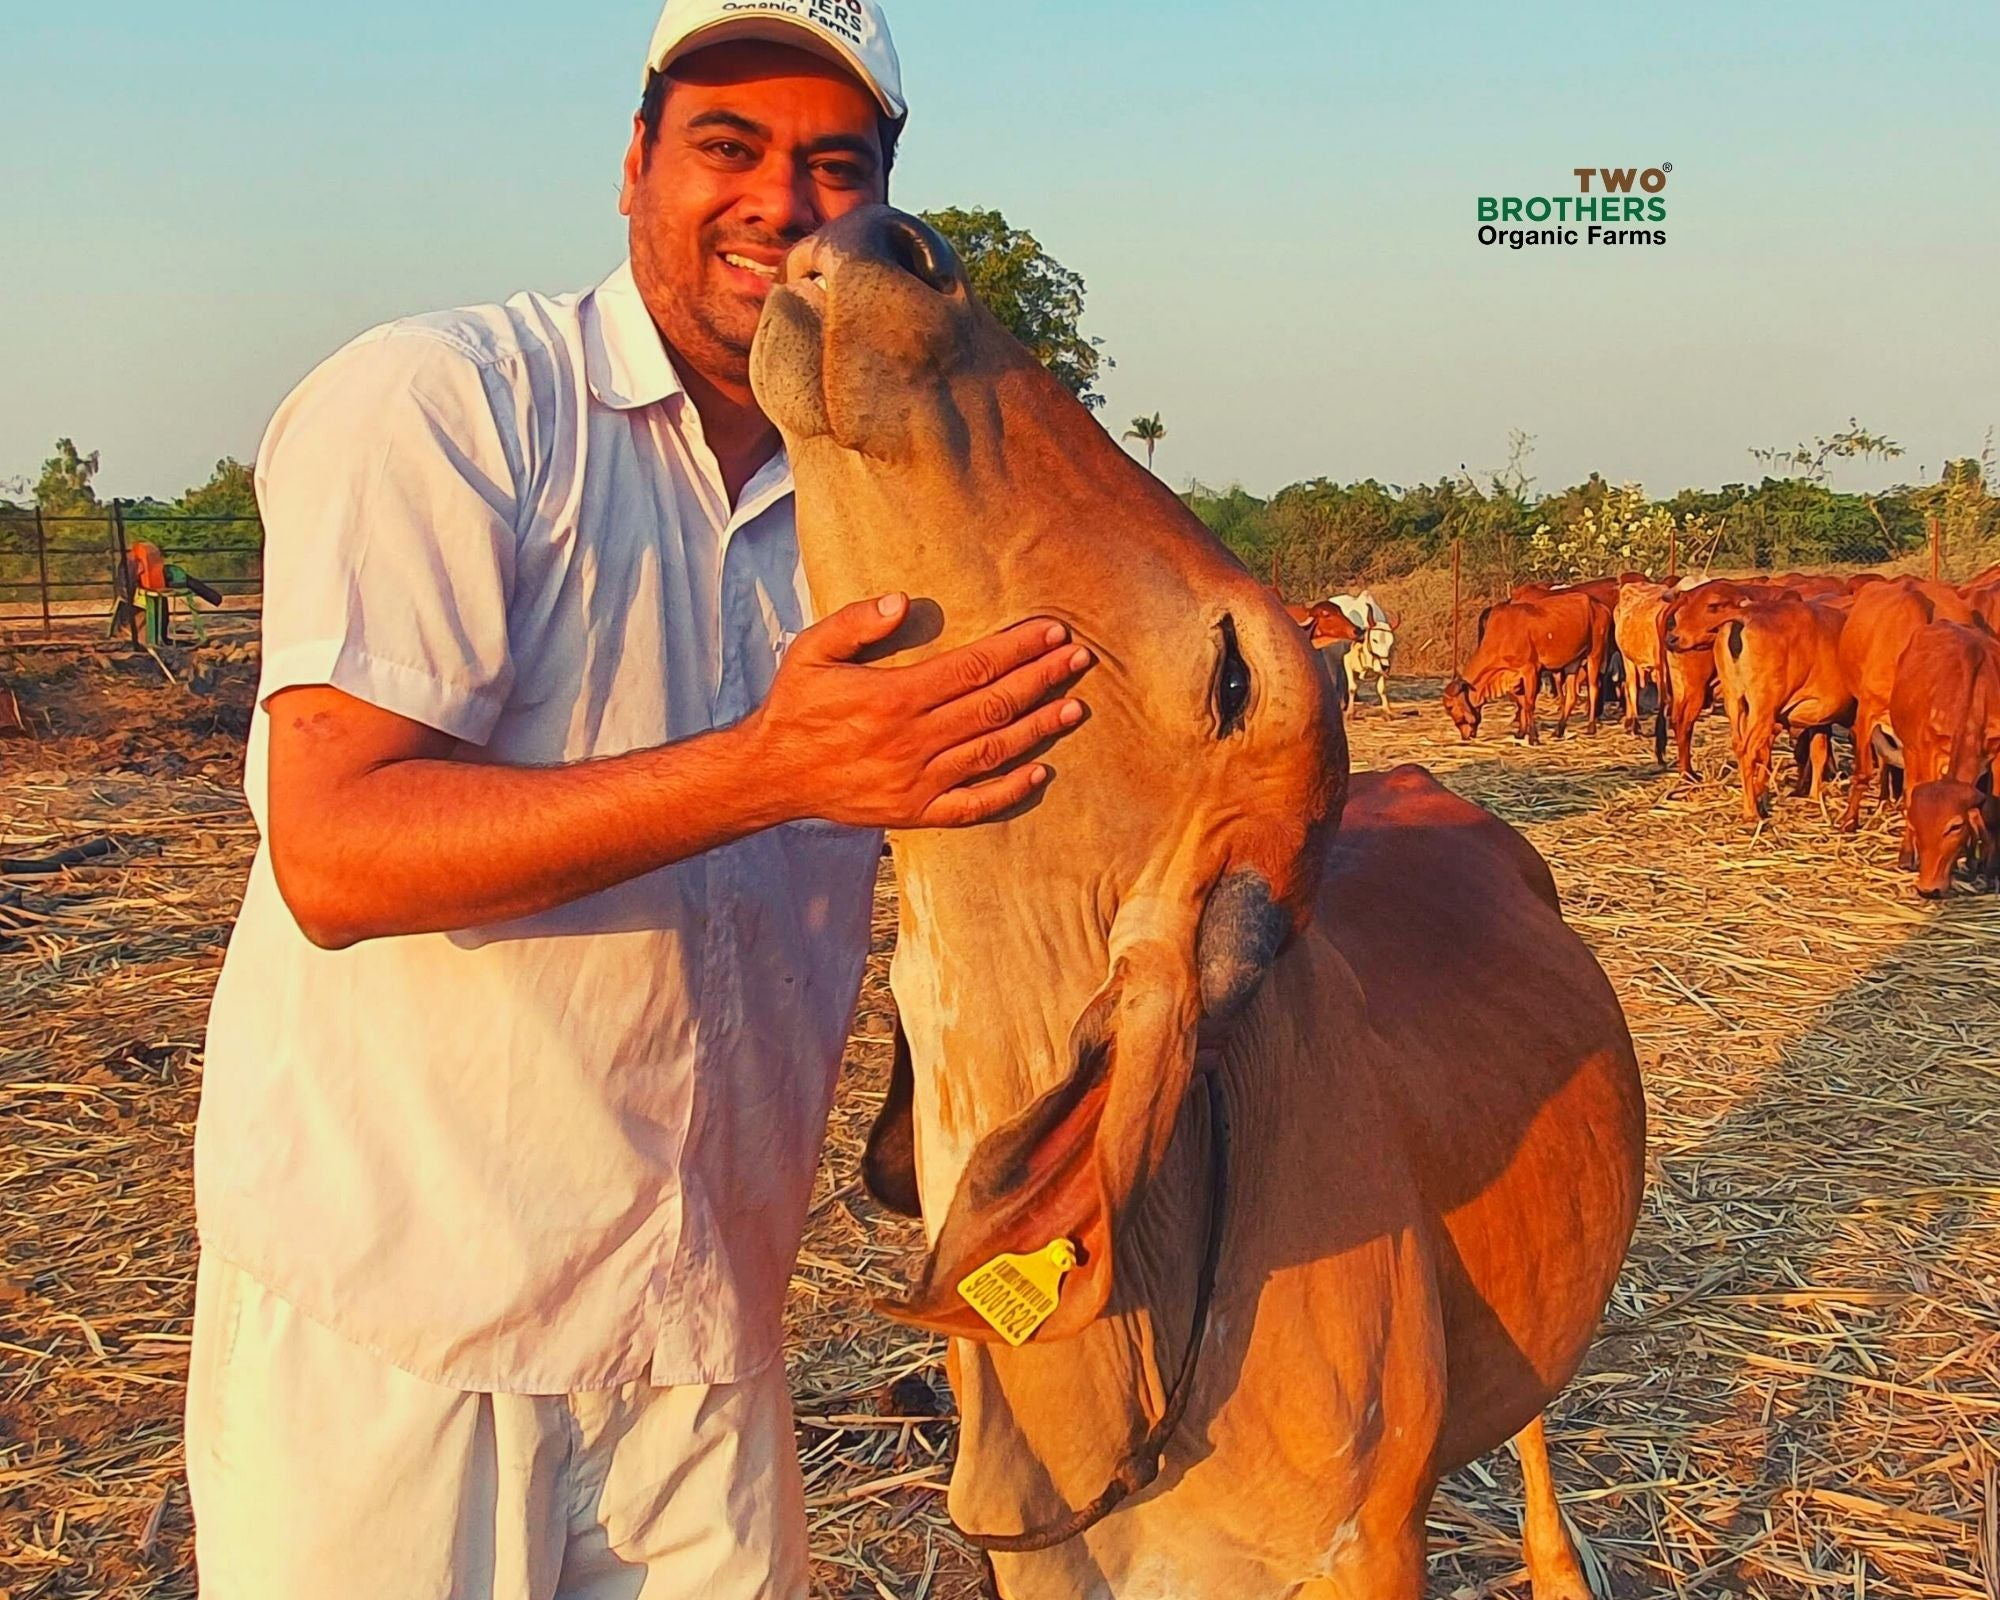 Bovine Colostrum, Colostrum, Cheek, Kharvas, Integrated Farming, Desi Cow based Natural farming, Rural India and the cow, Farmer and his cow, two brothers, two brothers organic farm, IGg foods, Leaky gut foods, Colostrum powder